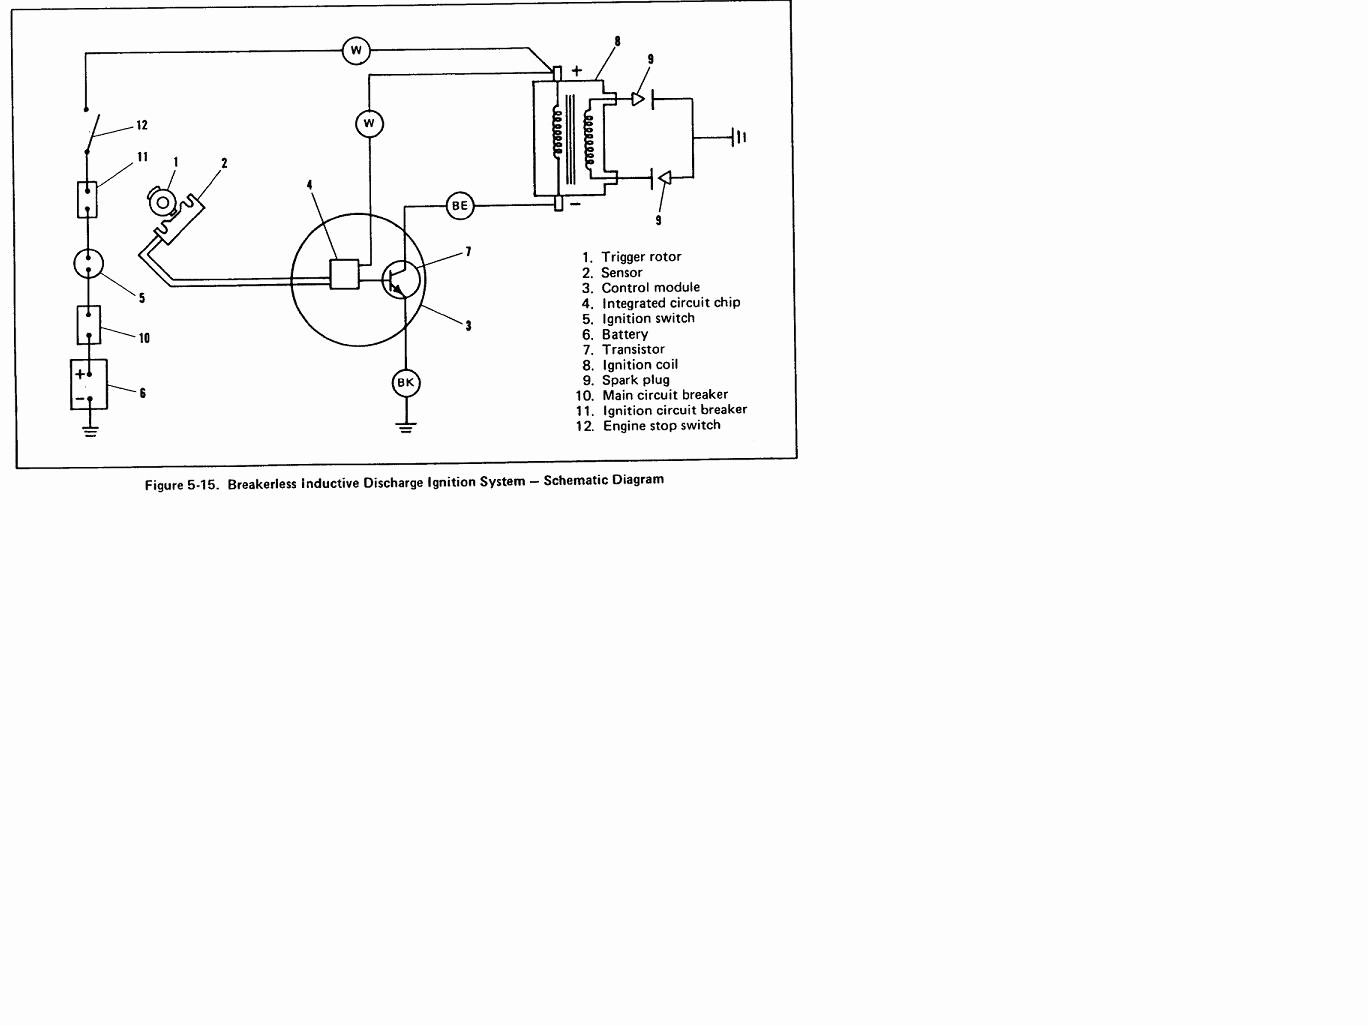 2001 Sportster Ignition System Diagram Trusted Wiring Diagrams Ford Harley Davidson Coil Residential Electrical Symbols U2022